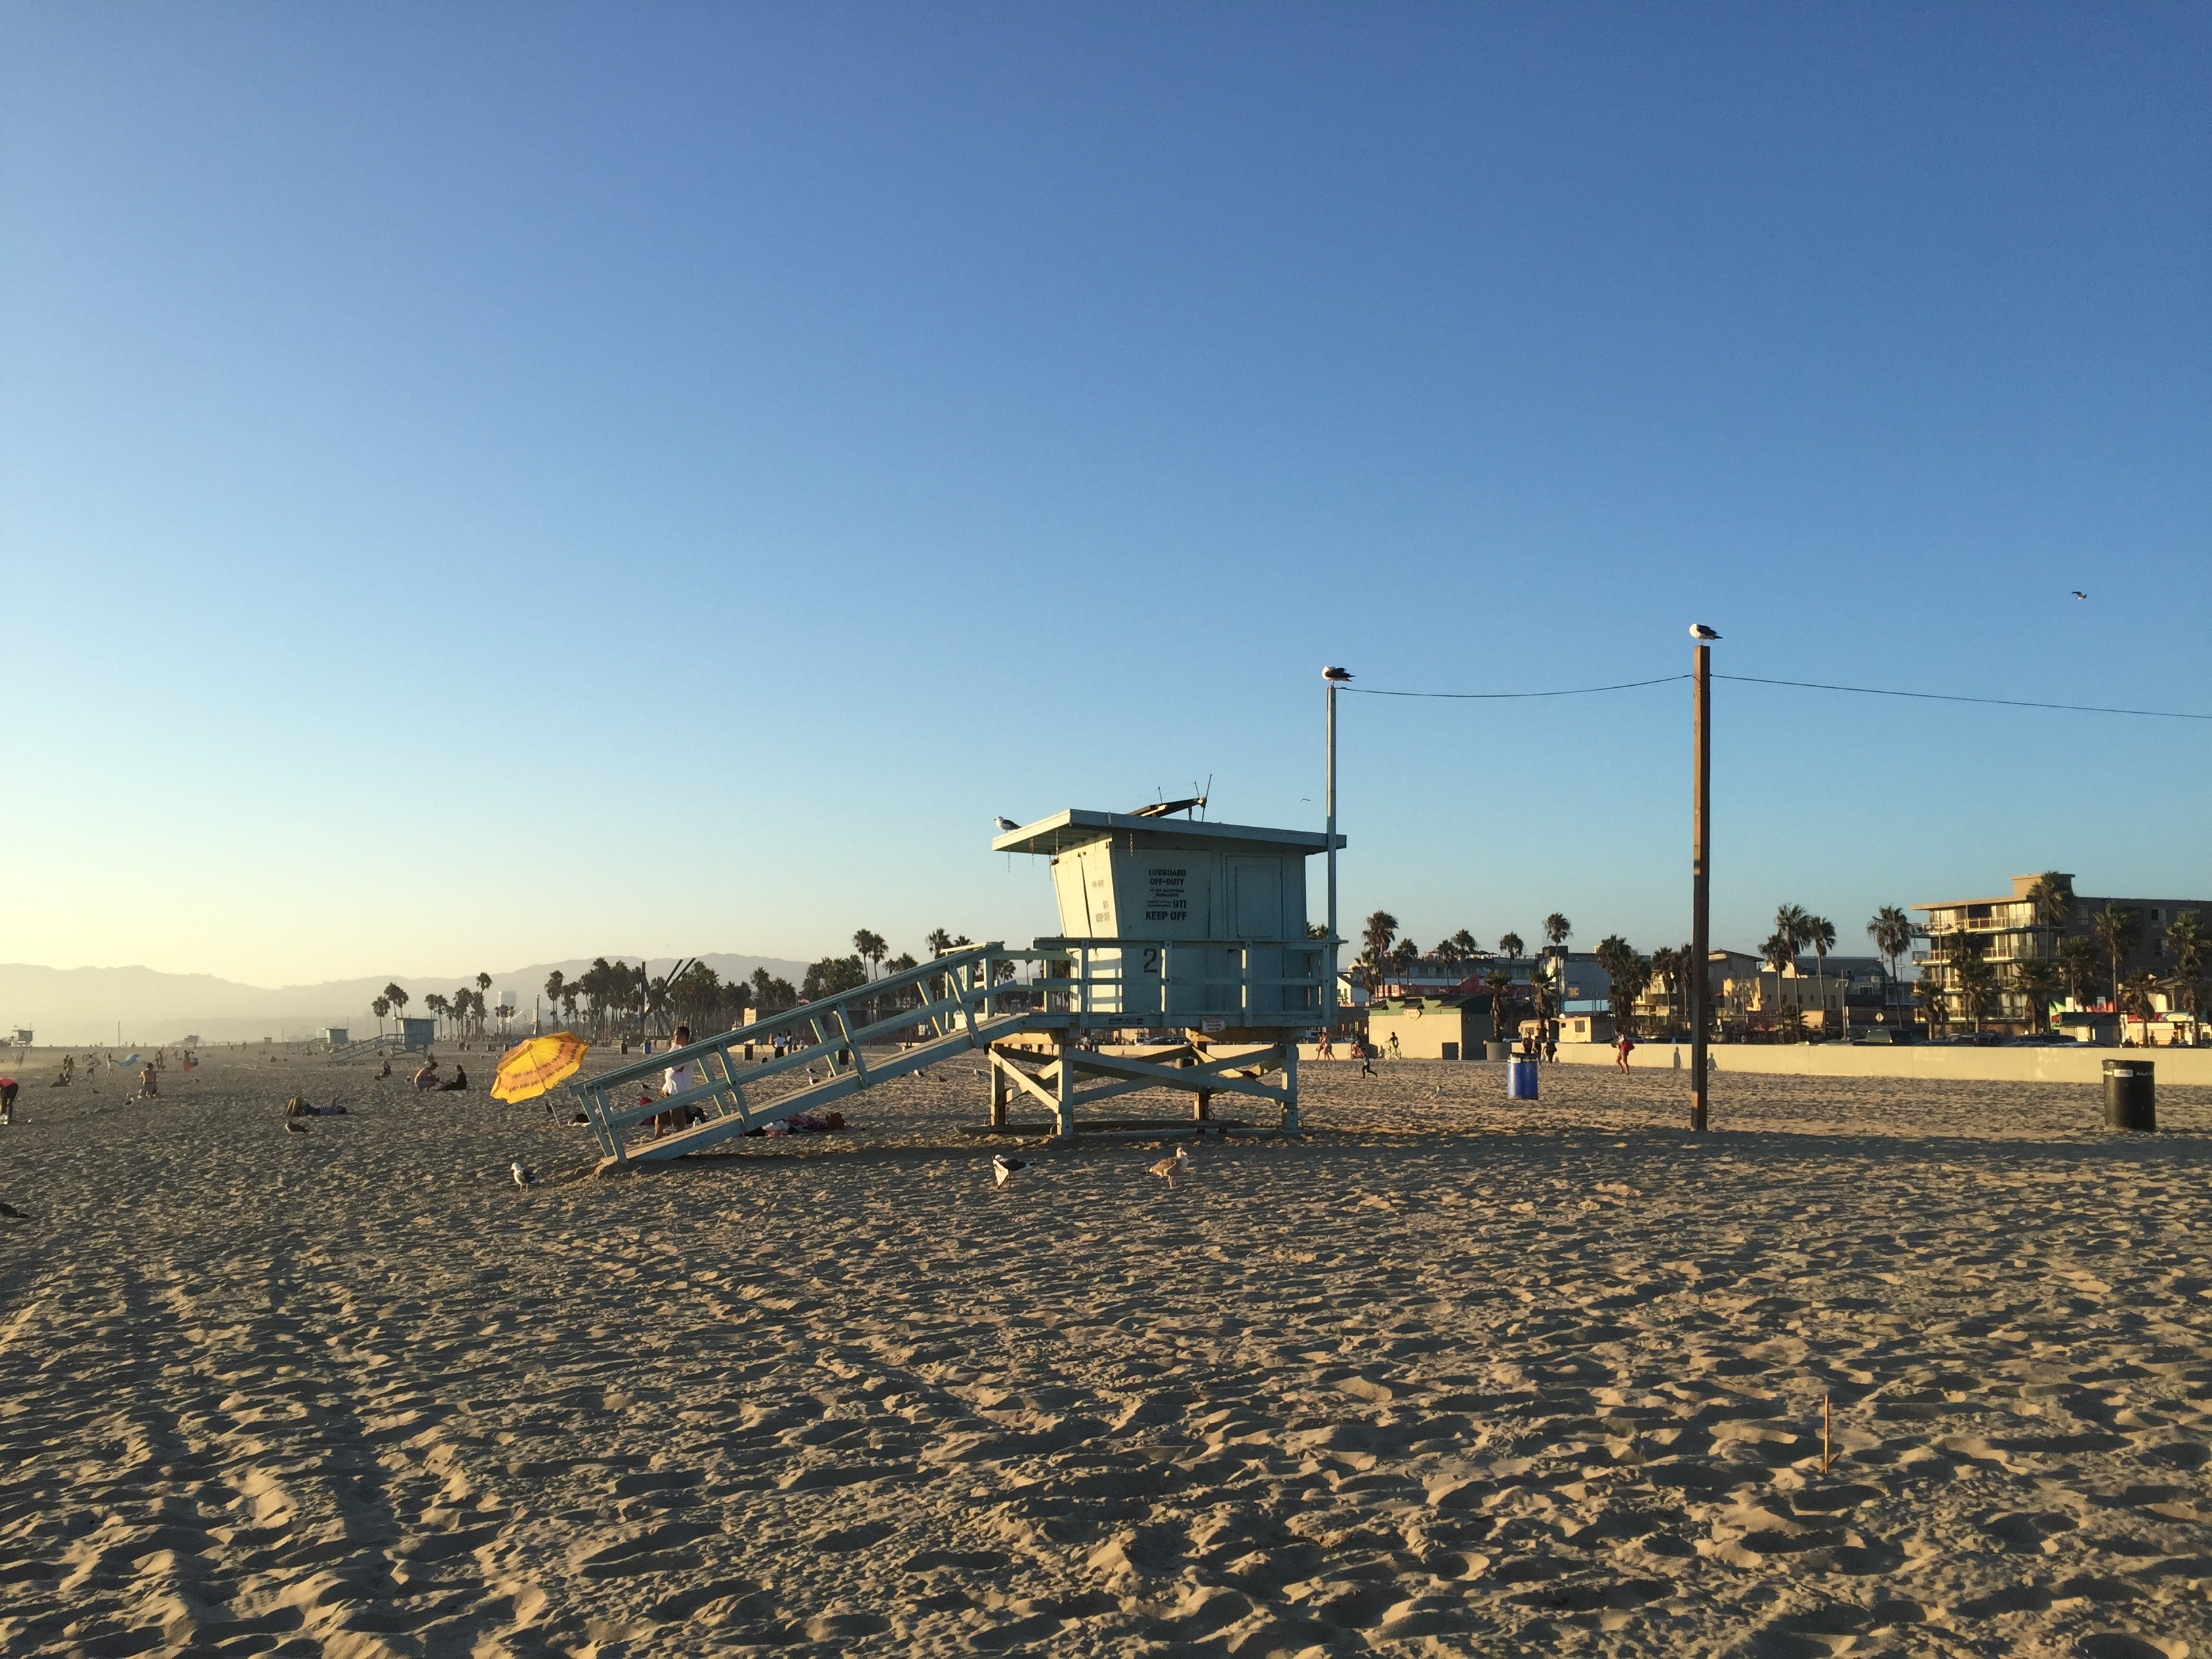 photo Santa Monica Californie, Venice Beach cabanon